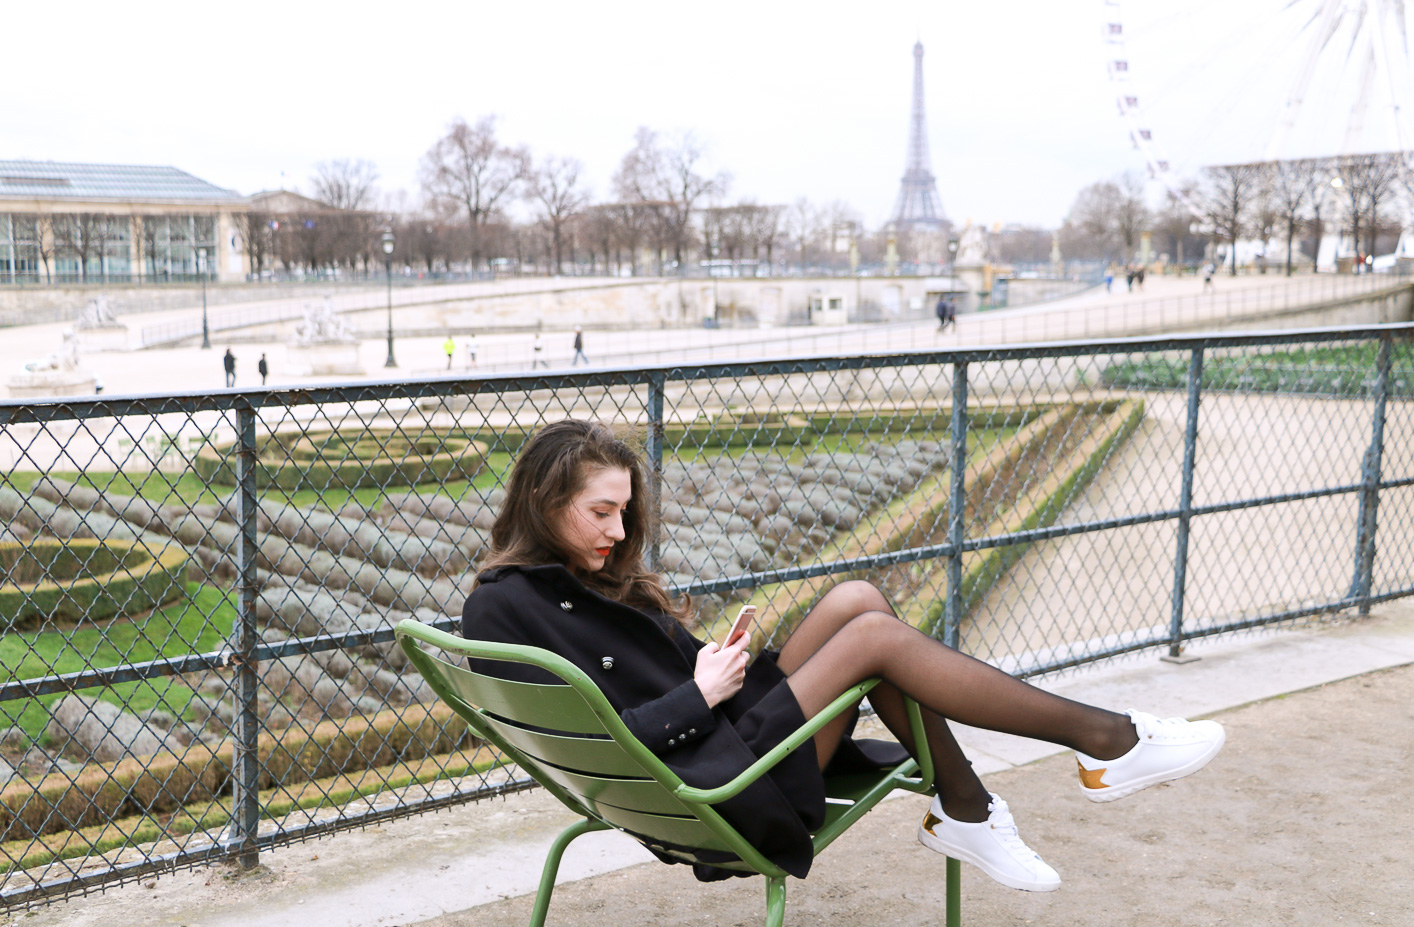 Fashion Blogger Veronika Lipar of Brunette from Wall Street sharing how to style chic black ruffled mini skirt, sexy black tights and white sneakers as a Parisian